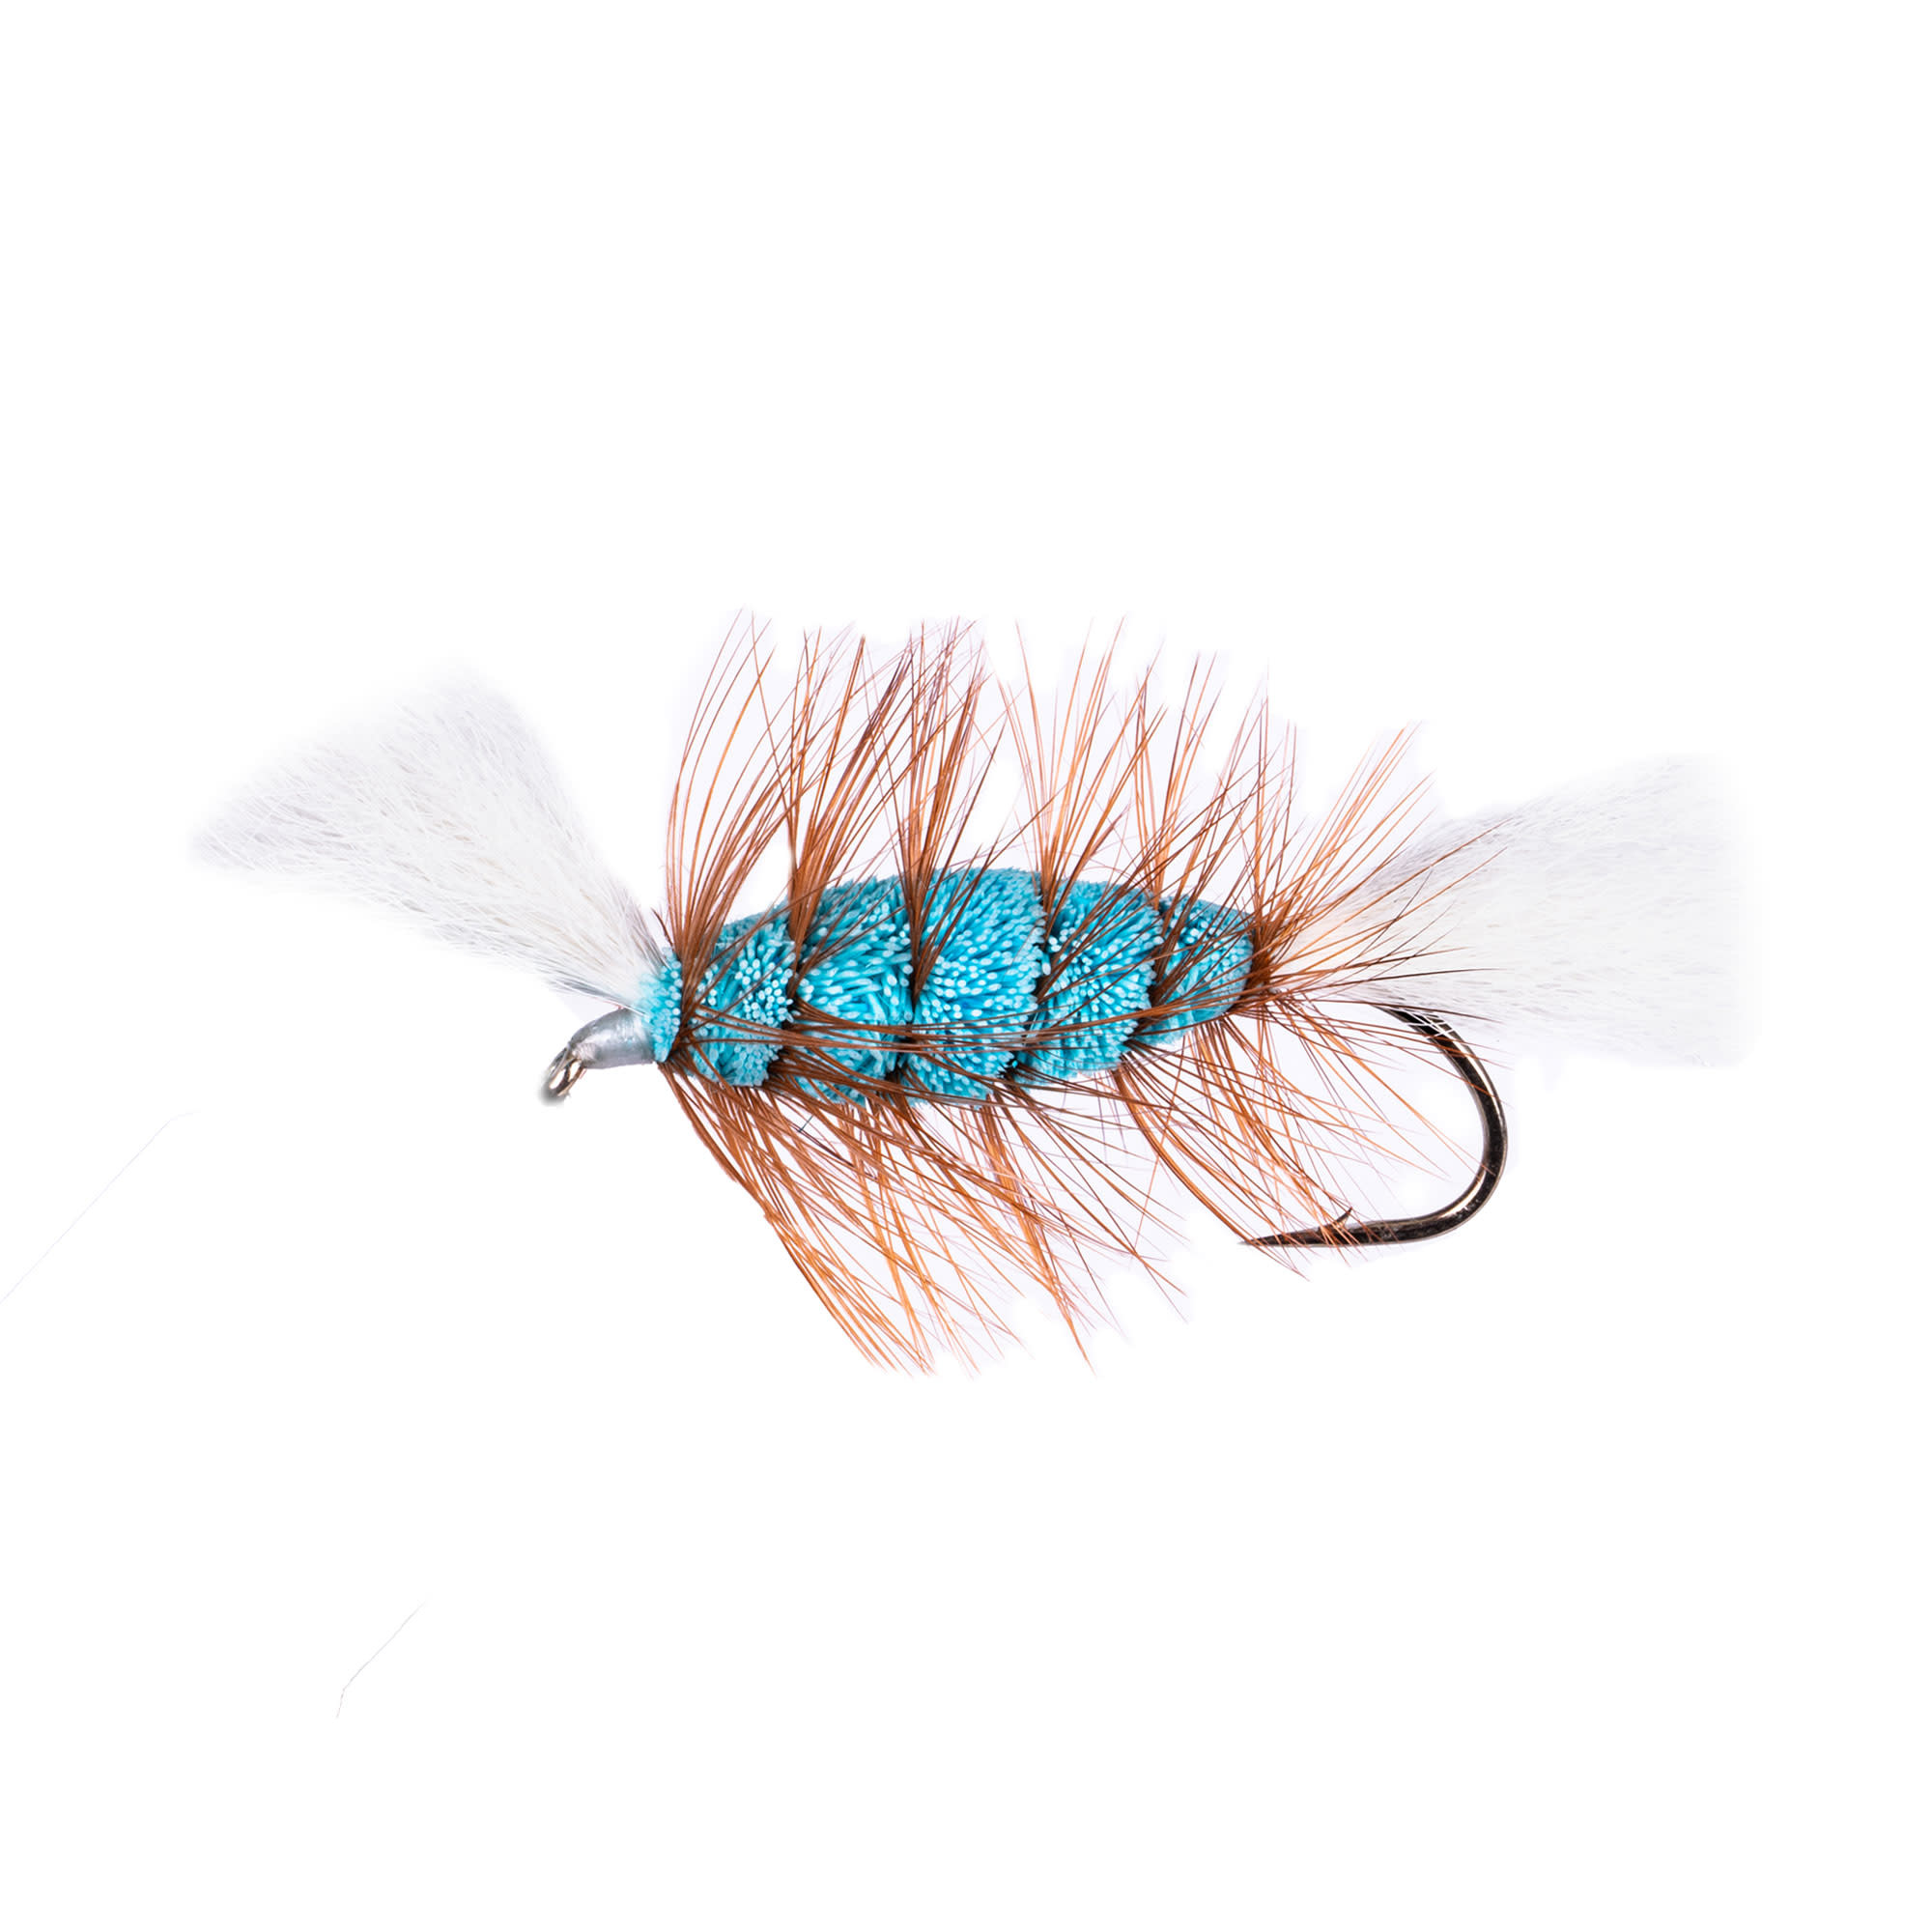 Labatt Blue - White Tail - Brown Hackle (Cigar Bomber) #4